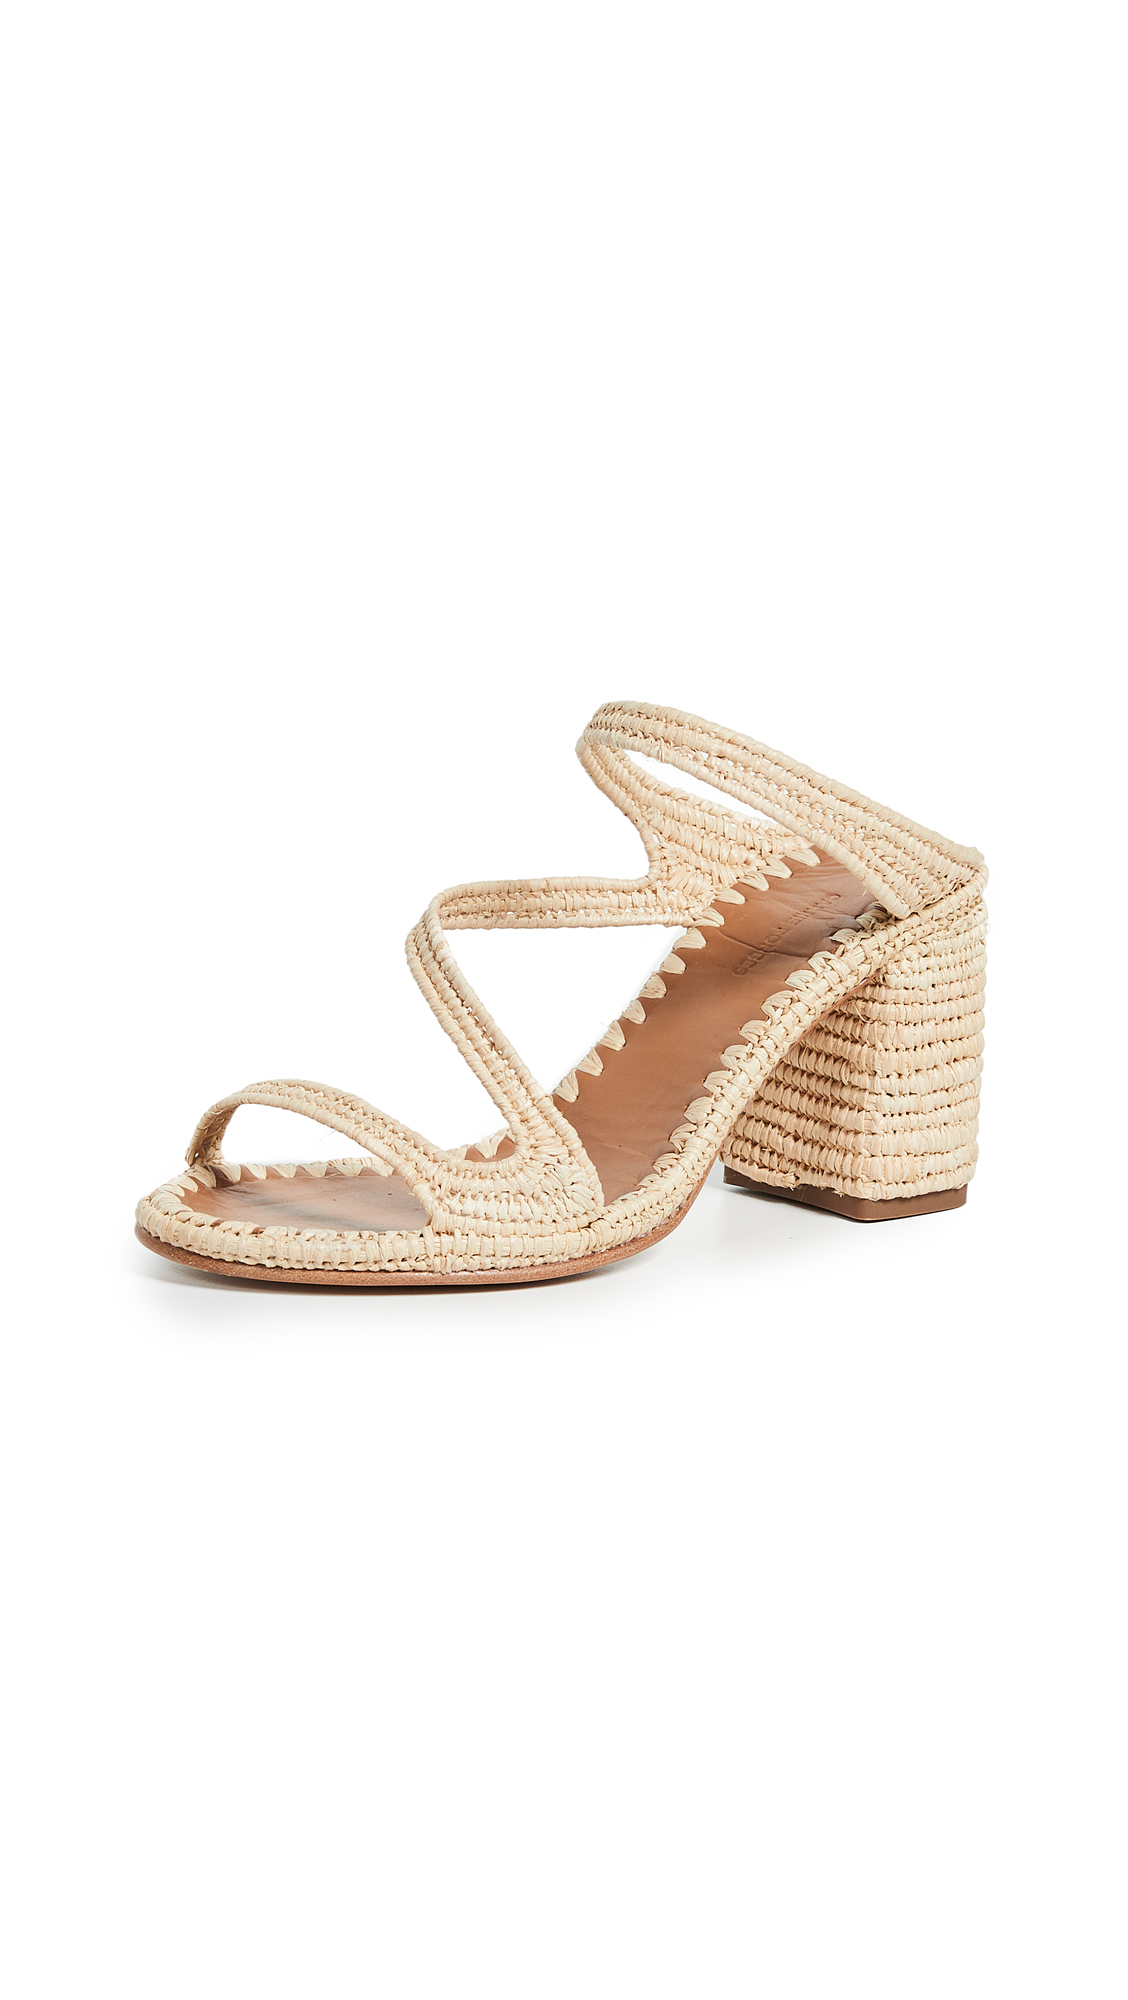 Buy Carrie Forbes Salah Heeled Mules online, shop Carrie Forbes